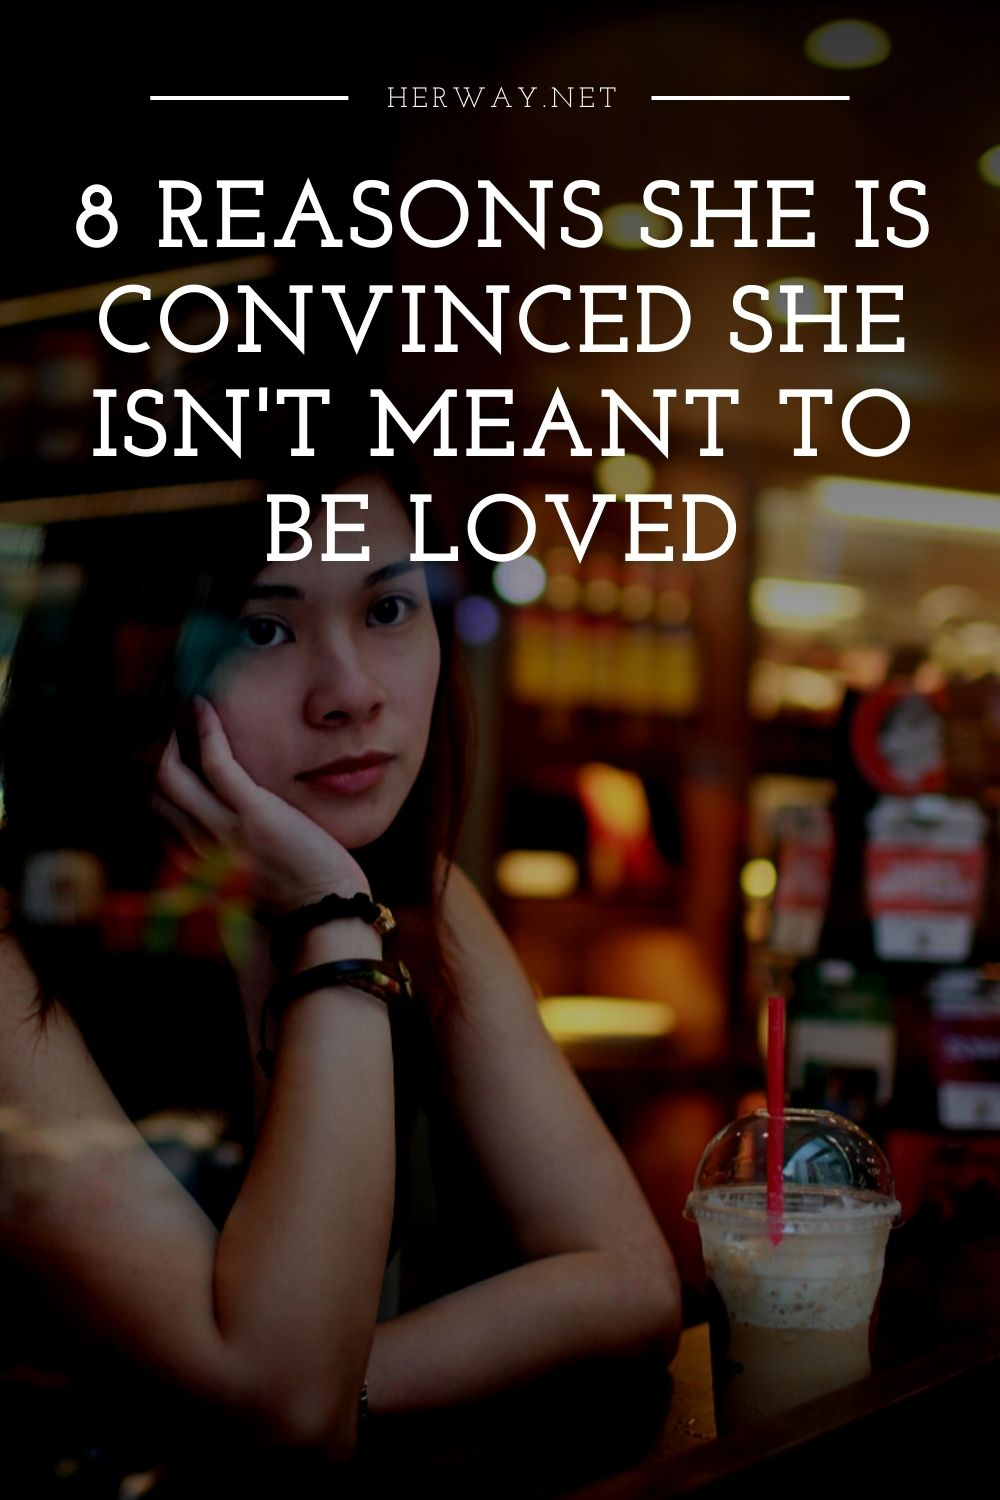 8 Reasons She Is Convinced She Isn't Meant To Be Loved